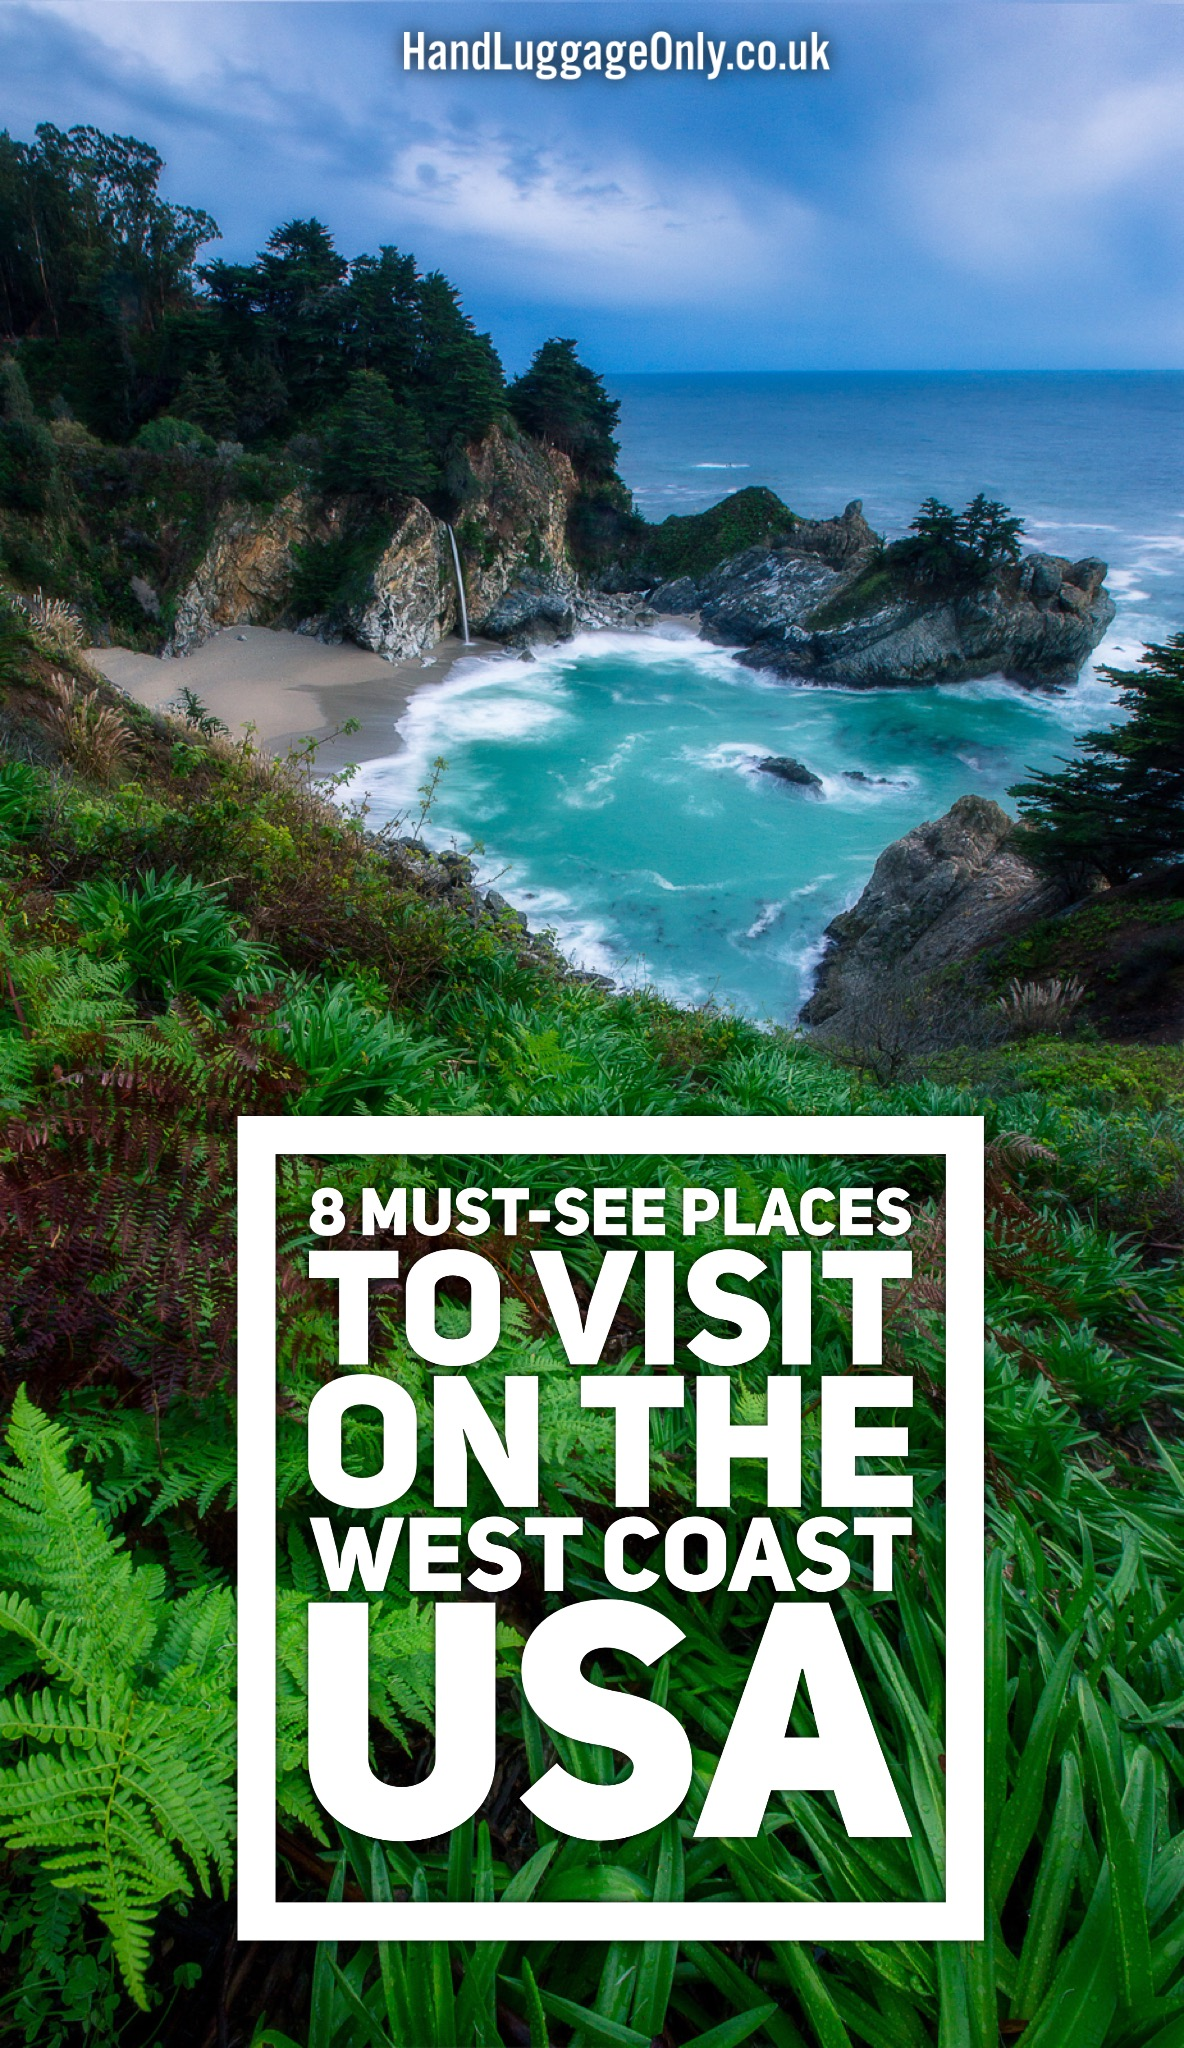 8 Must See Places To Visit On The West Coast of America